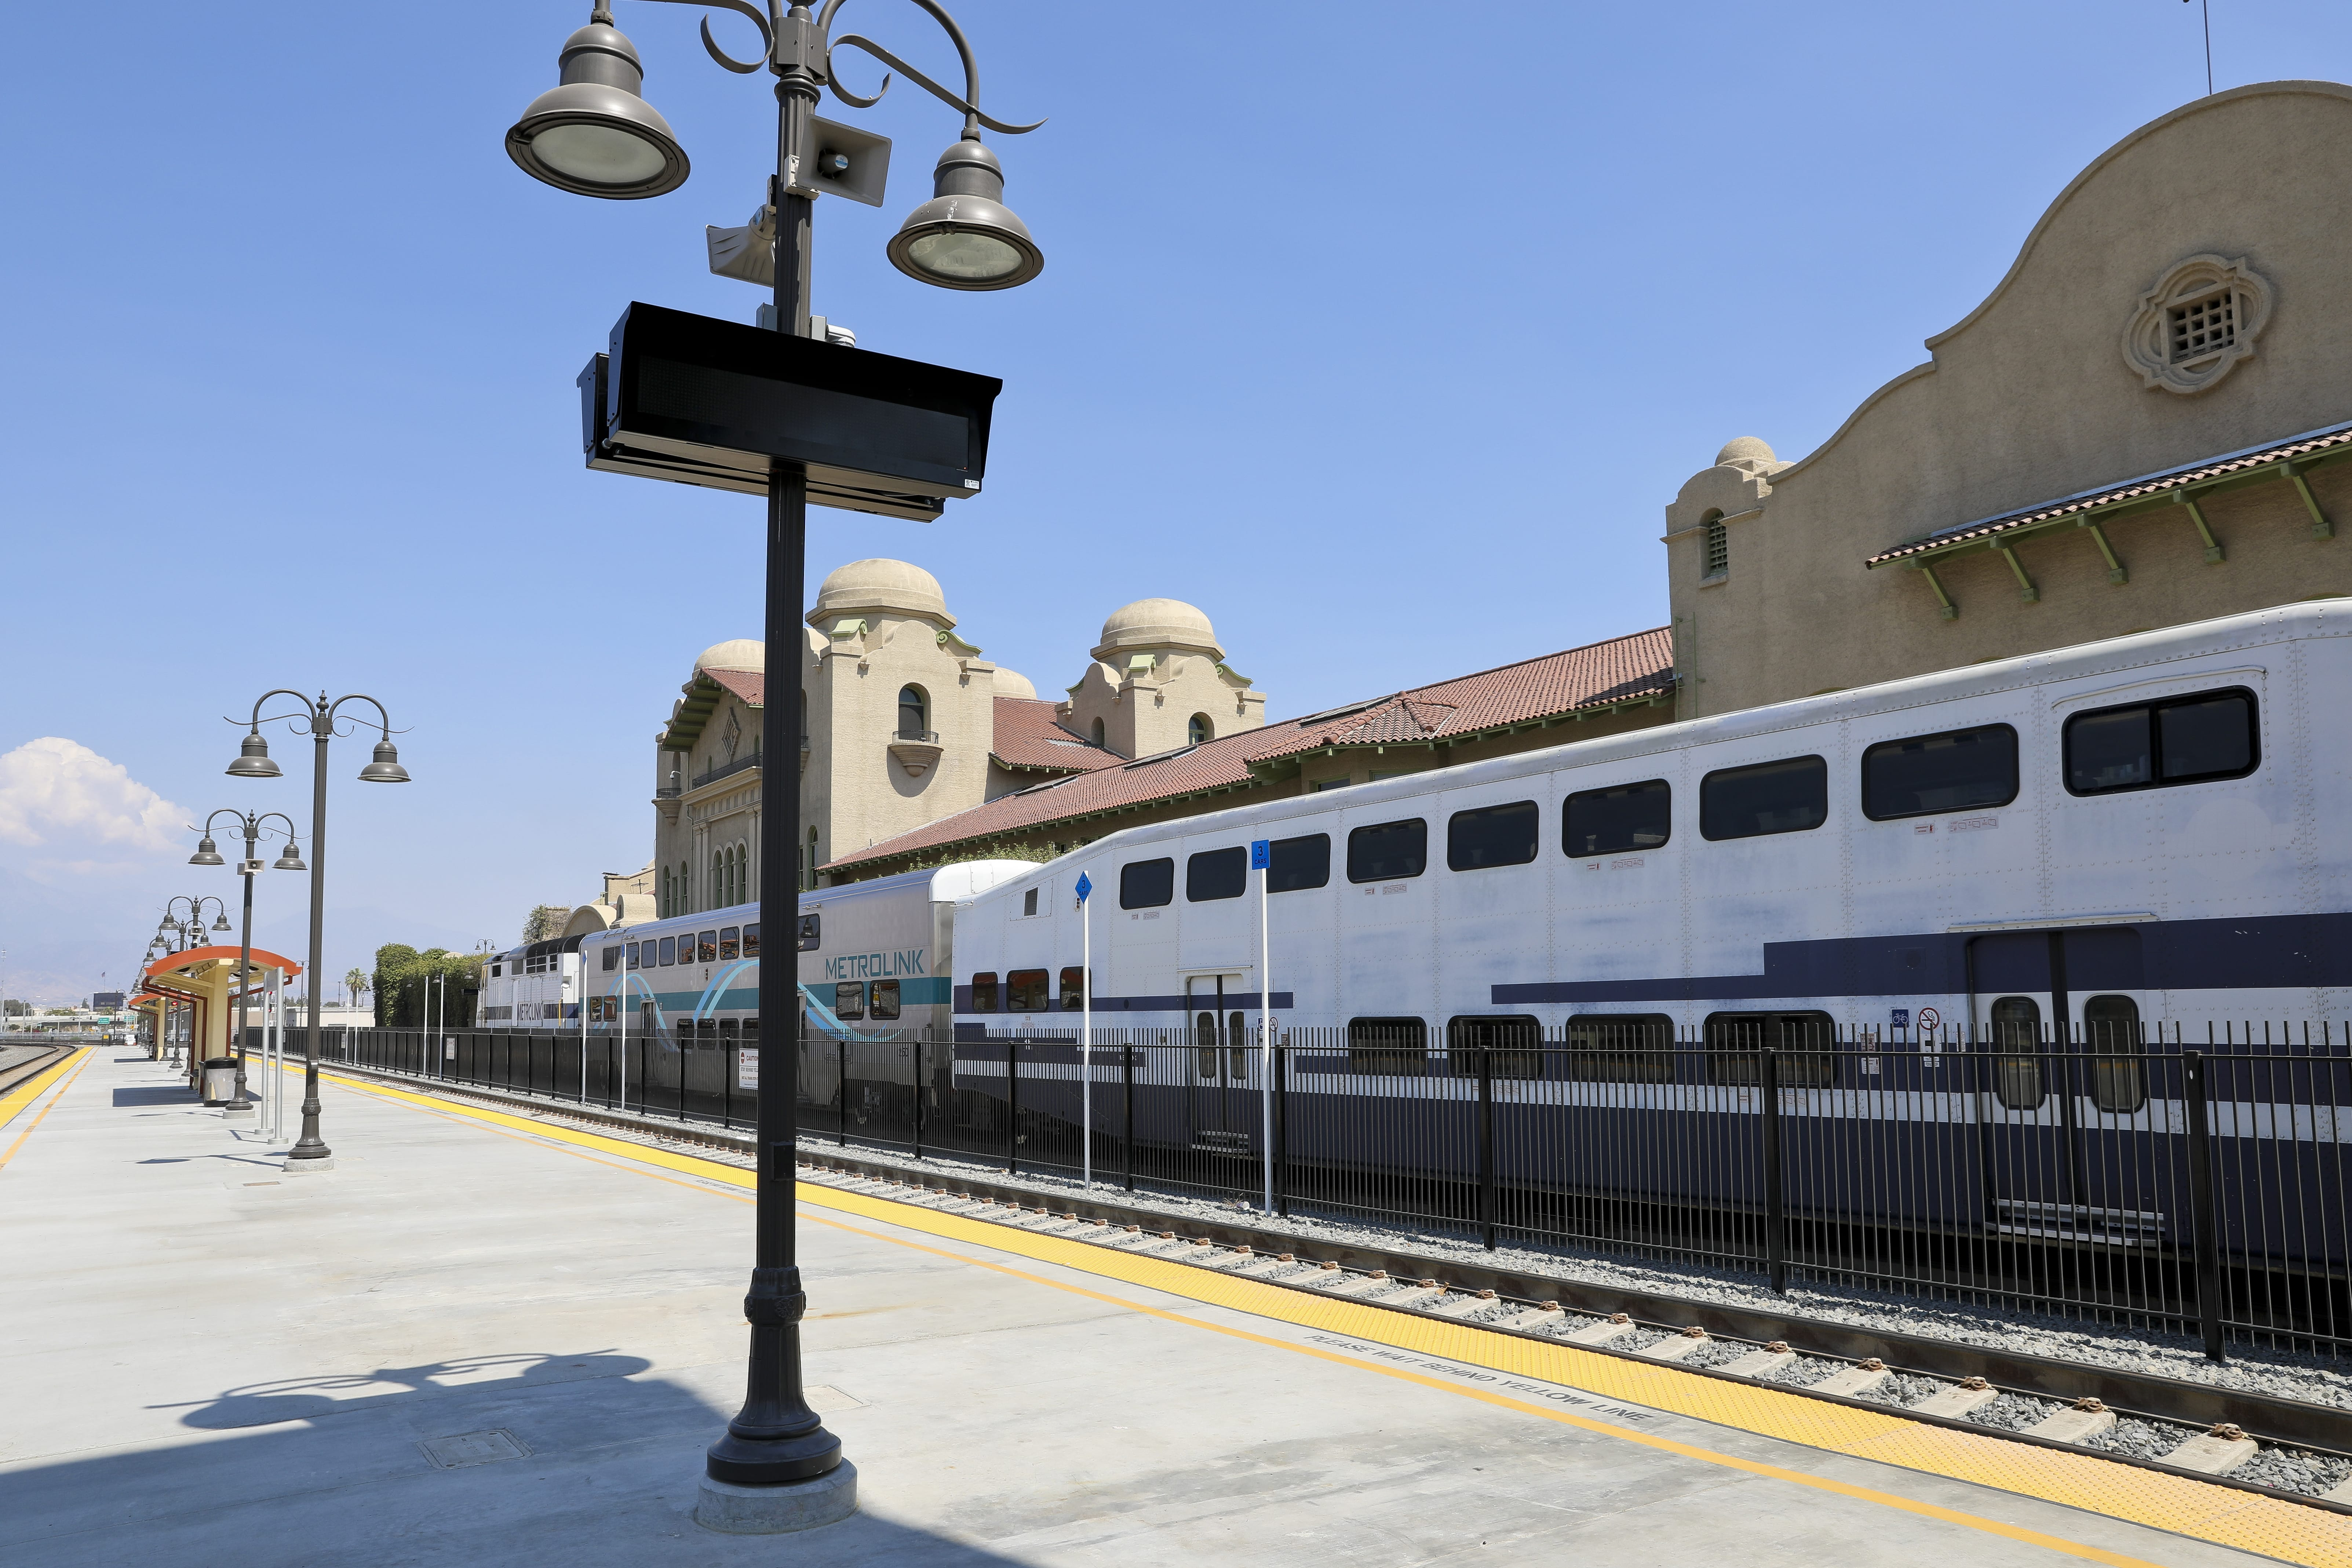 Train Departing Santa Fe Station in San Bernardino County